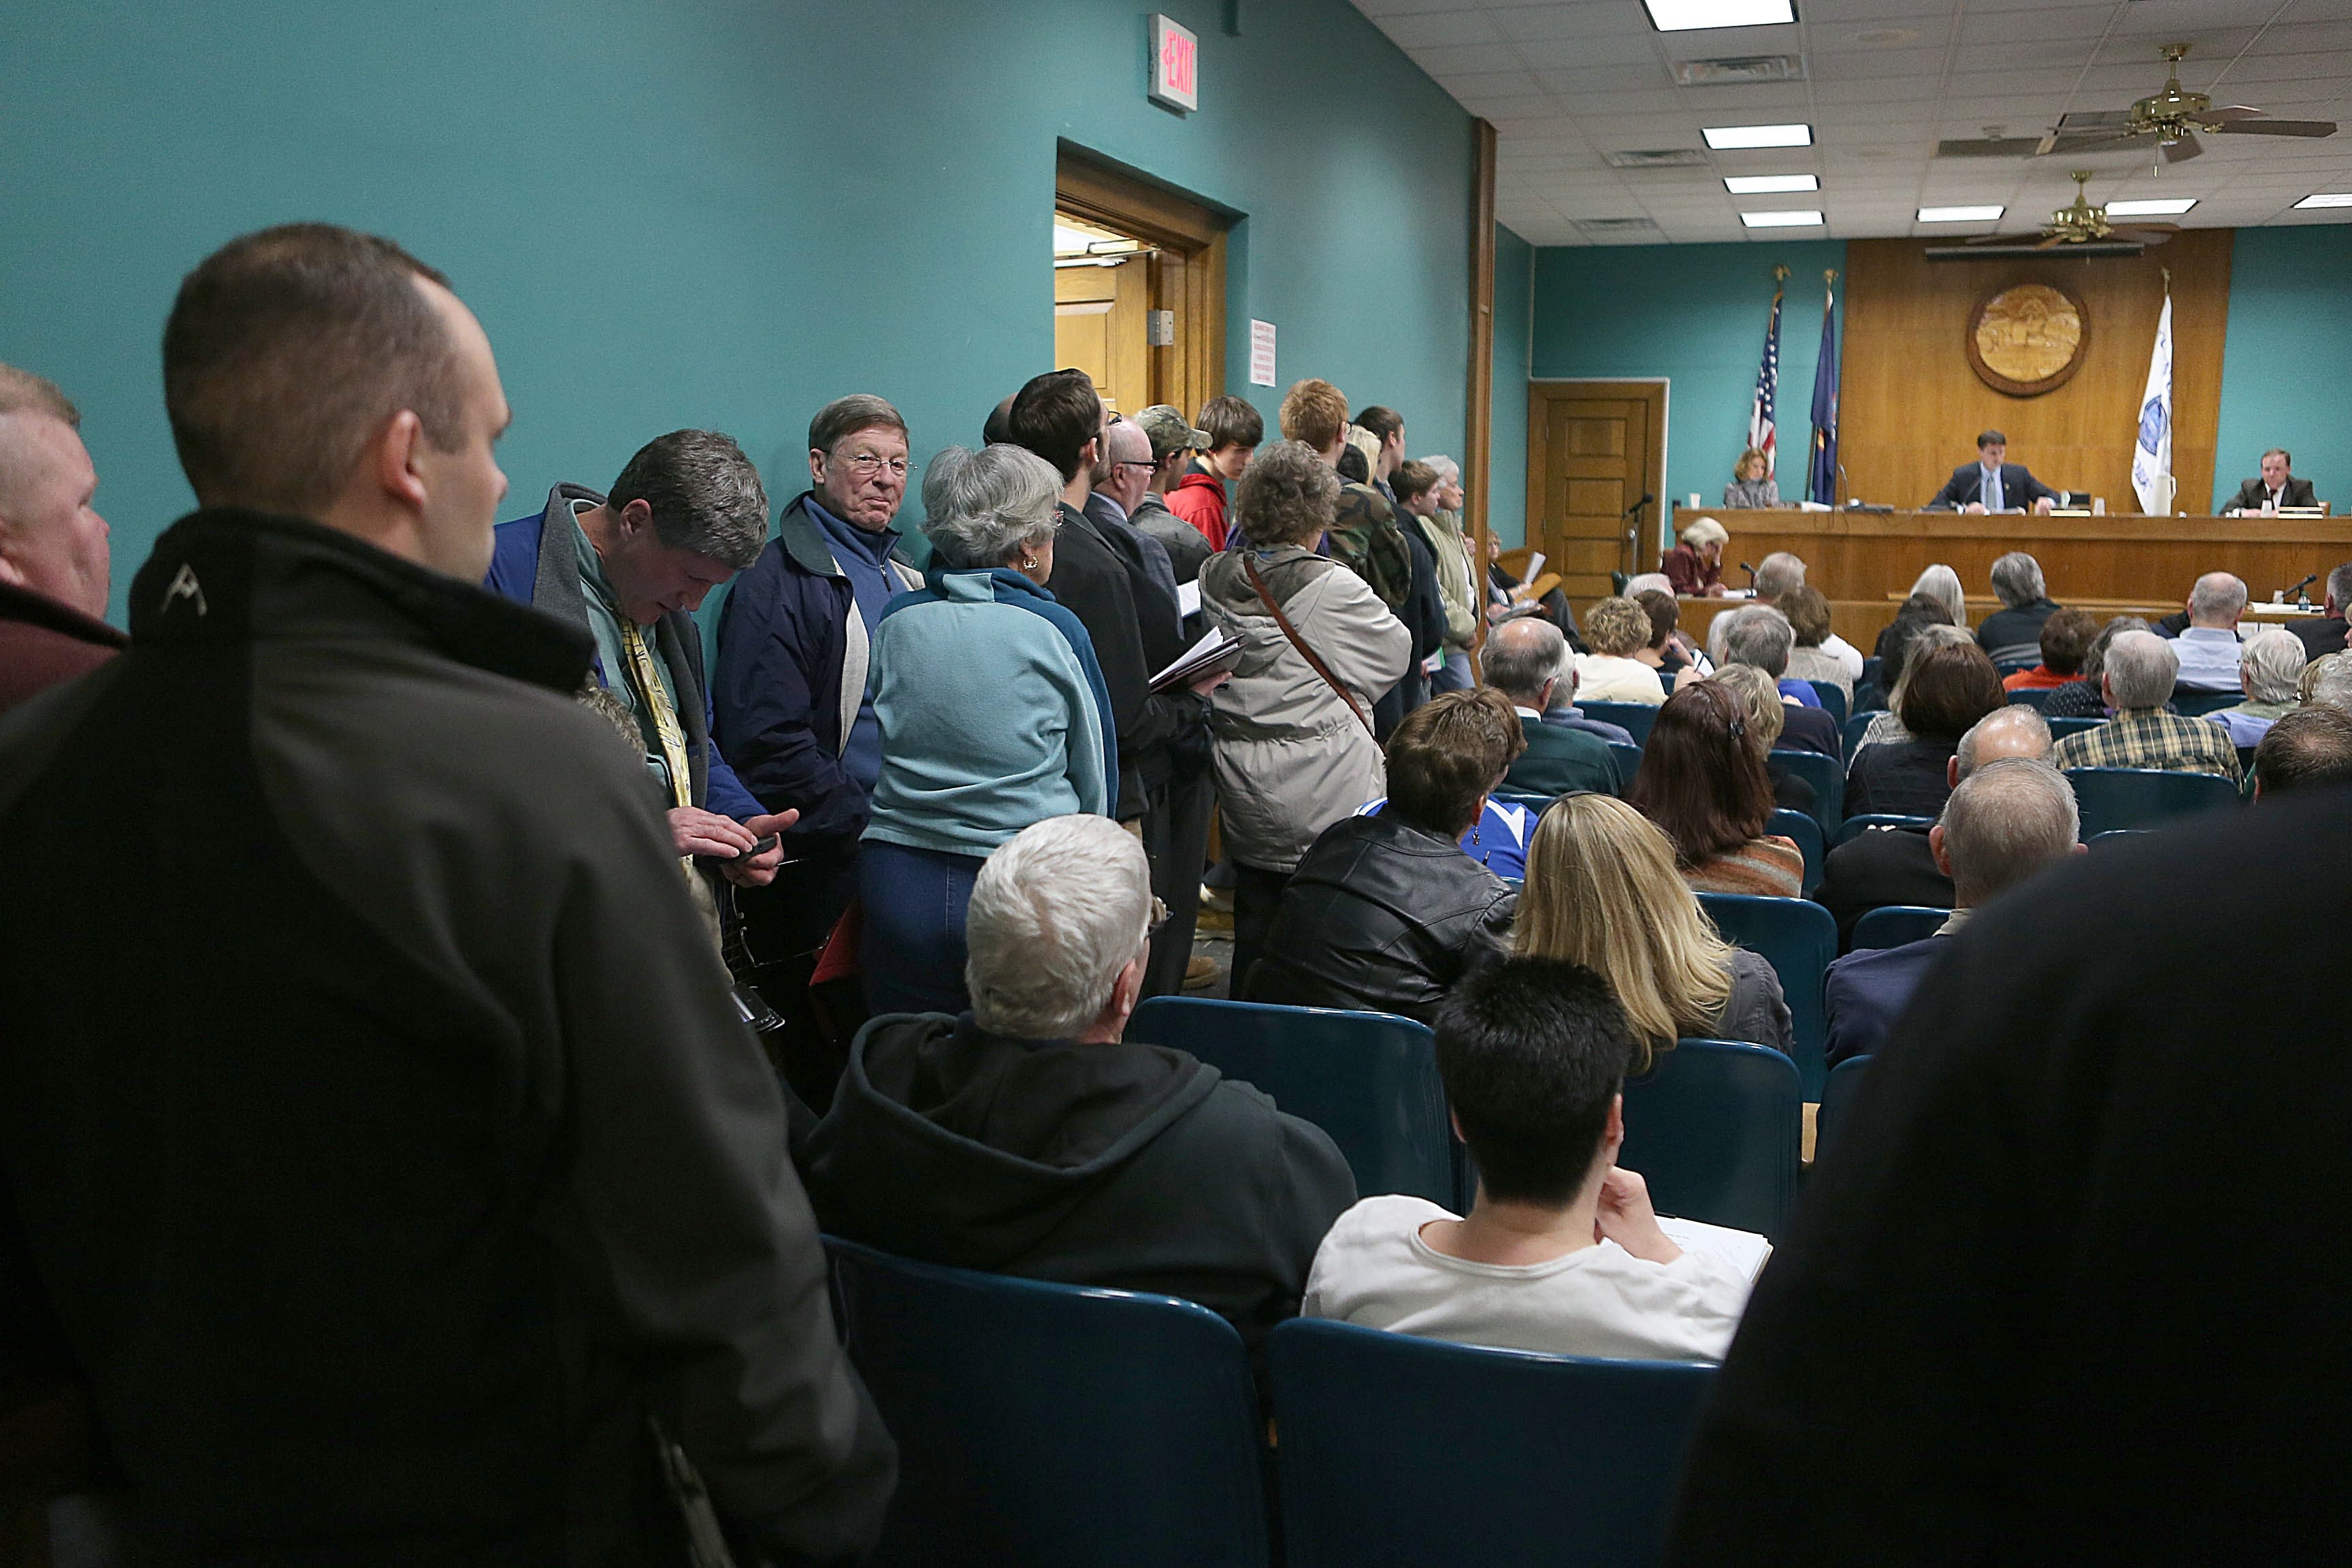 There was an overflow crowd at the Hamburg Town Board reorganization meeting Monday night, as a new Democratic majority took over the board and introduced some bold measures.